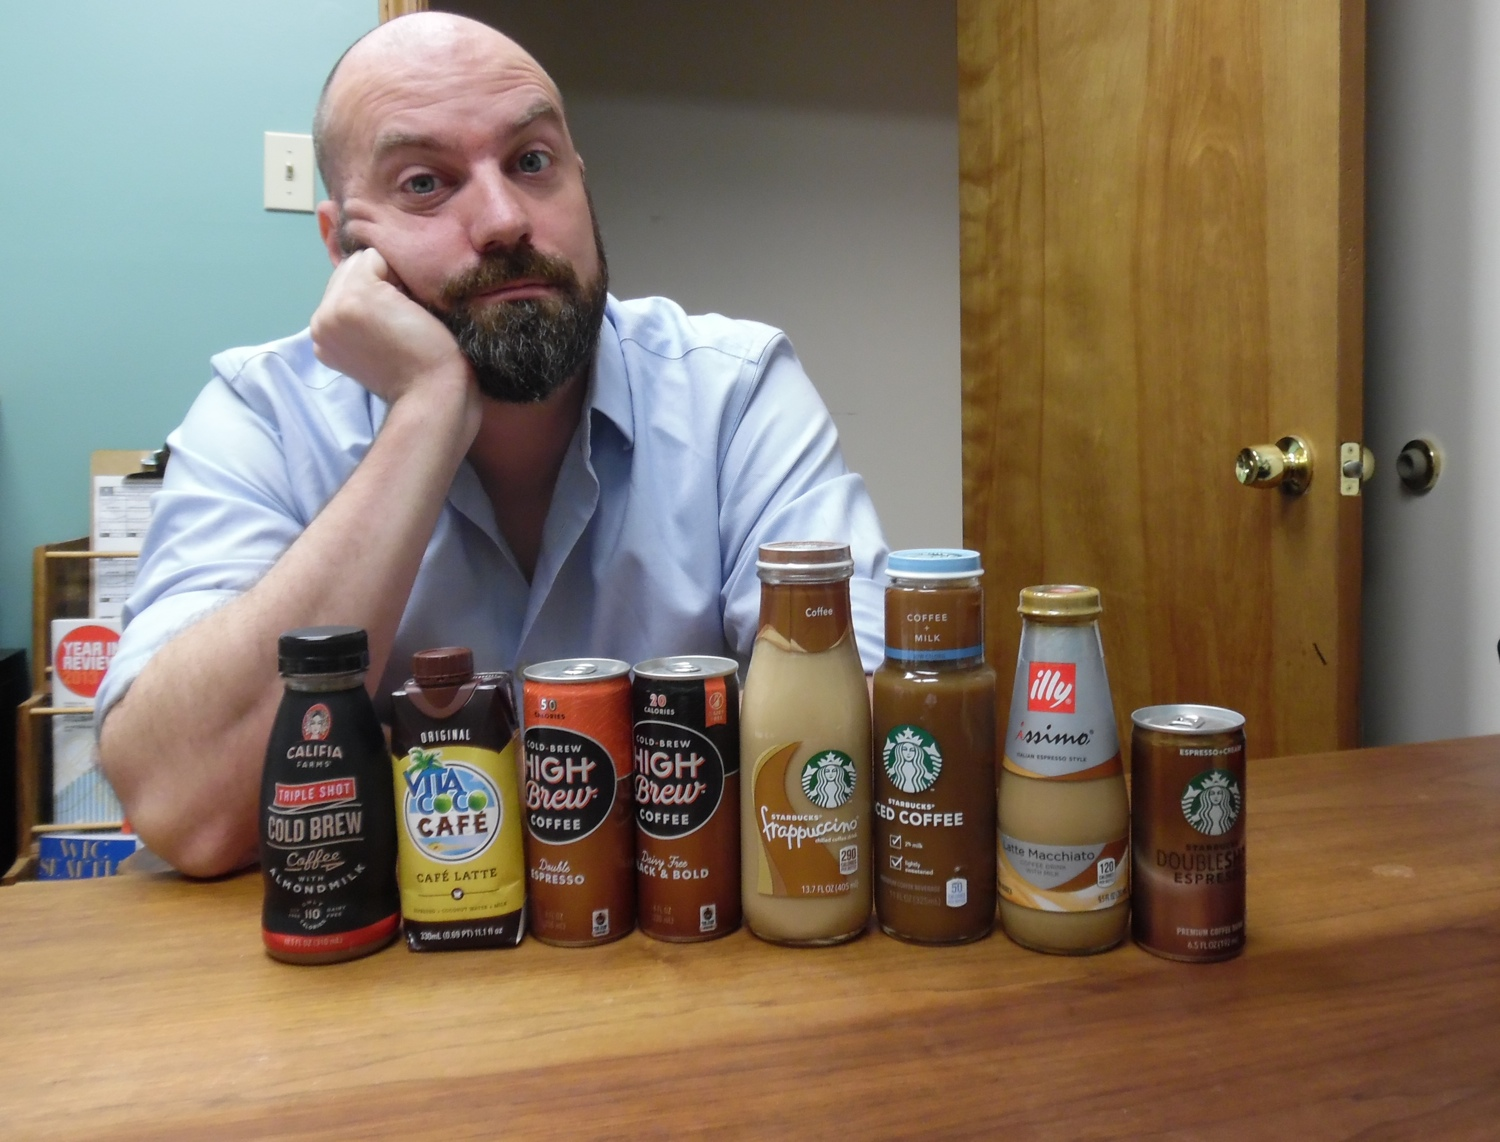 We tasted 'Ready to Drink' coffee from national brands